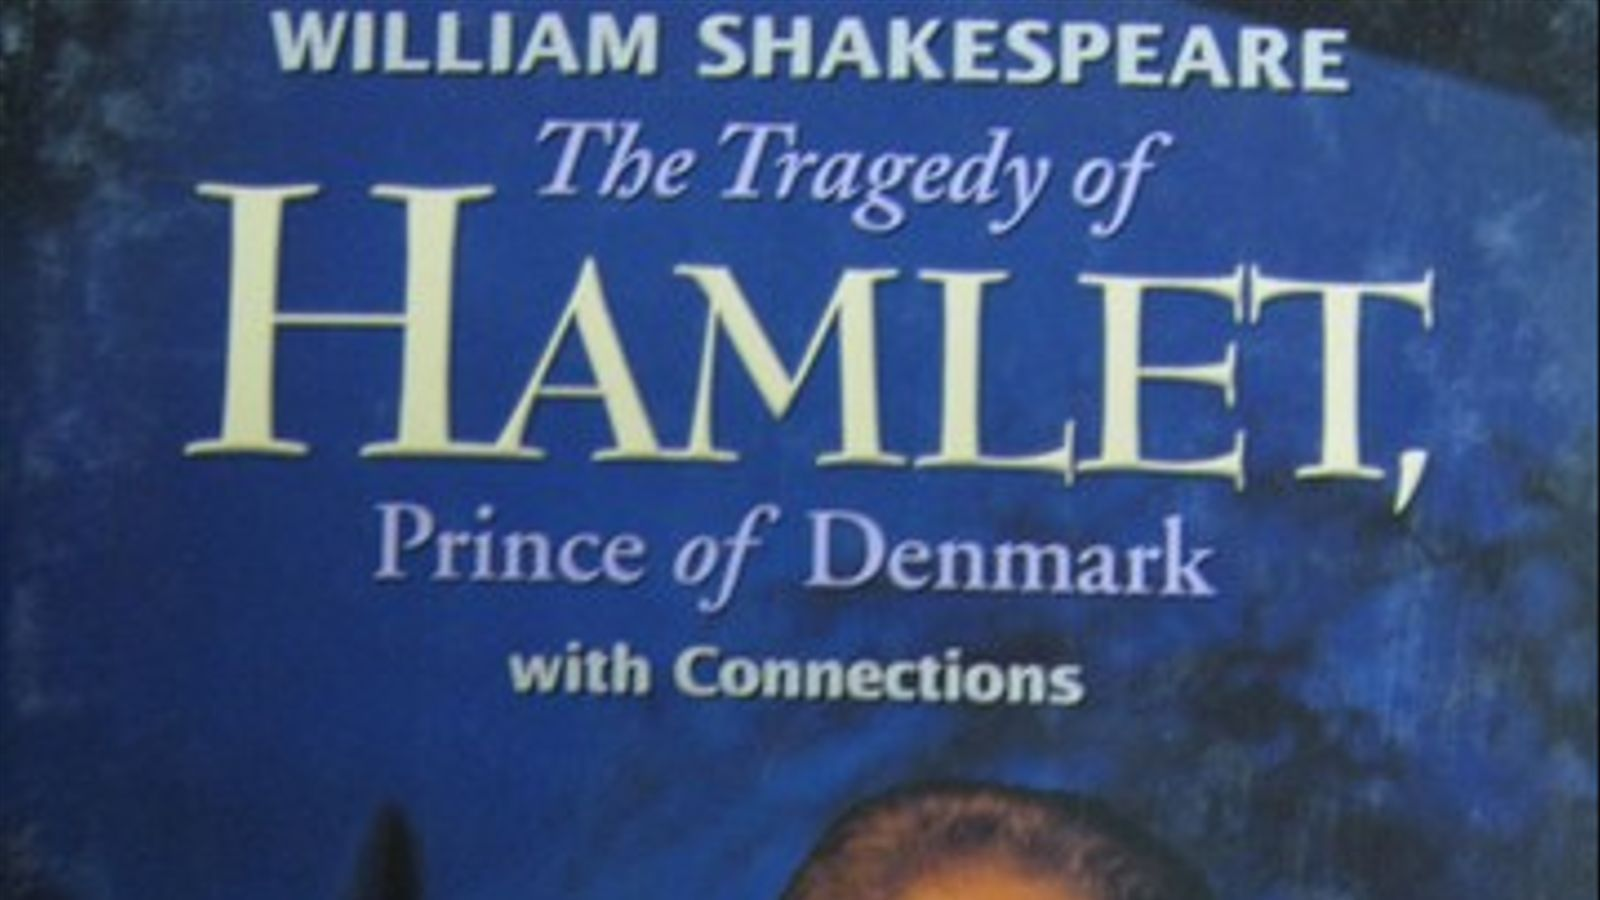 the tragedy of hamlet The tragedy of hamlet, free study guides and book notes including comprehensive chapter analysis, complete summary analysis, author biography information, character profiles, theme analysis, metaphor analysis, and top ten quotes on classic literature.